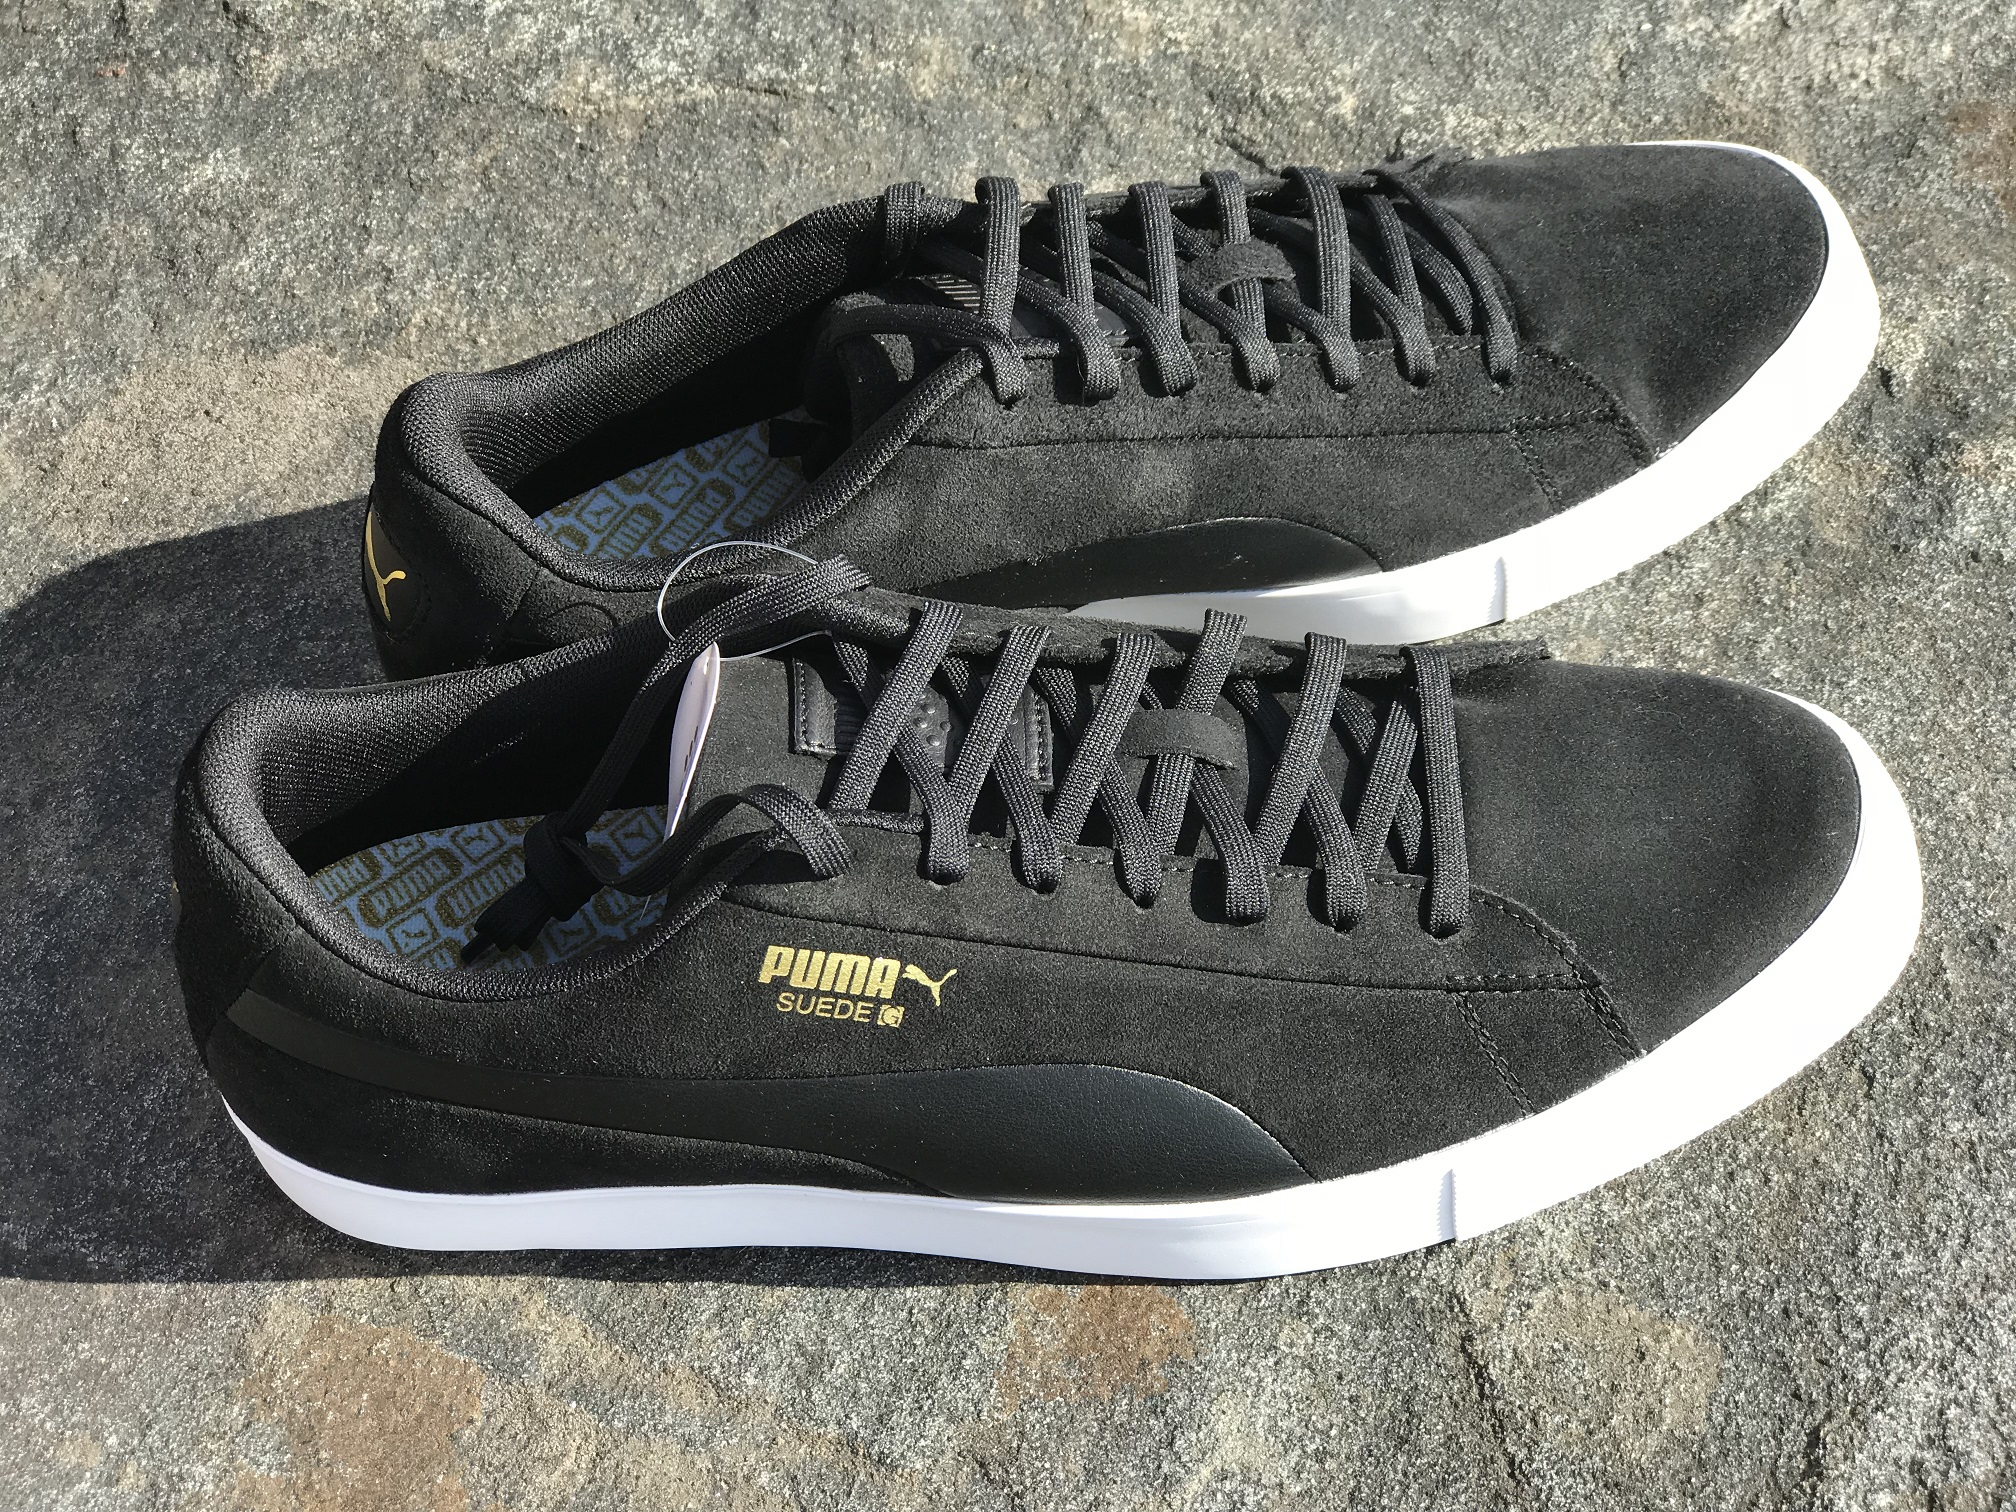 [Test] Puma Suede G – looking good and playing well